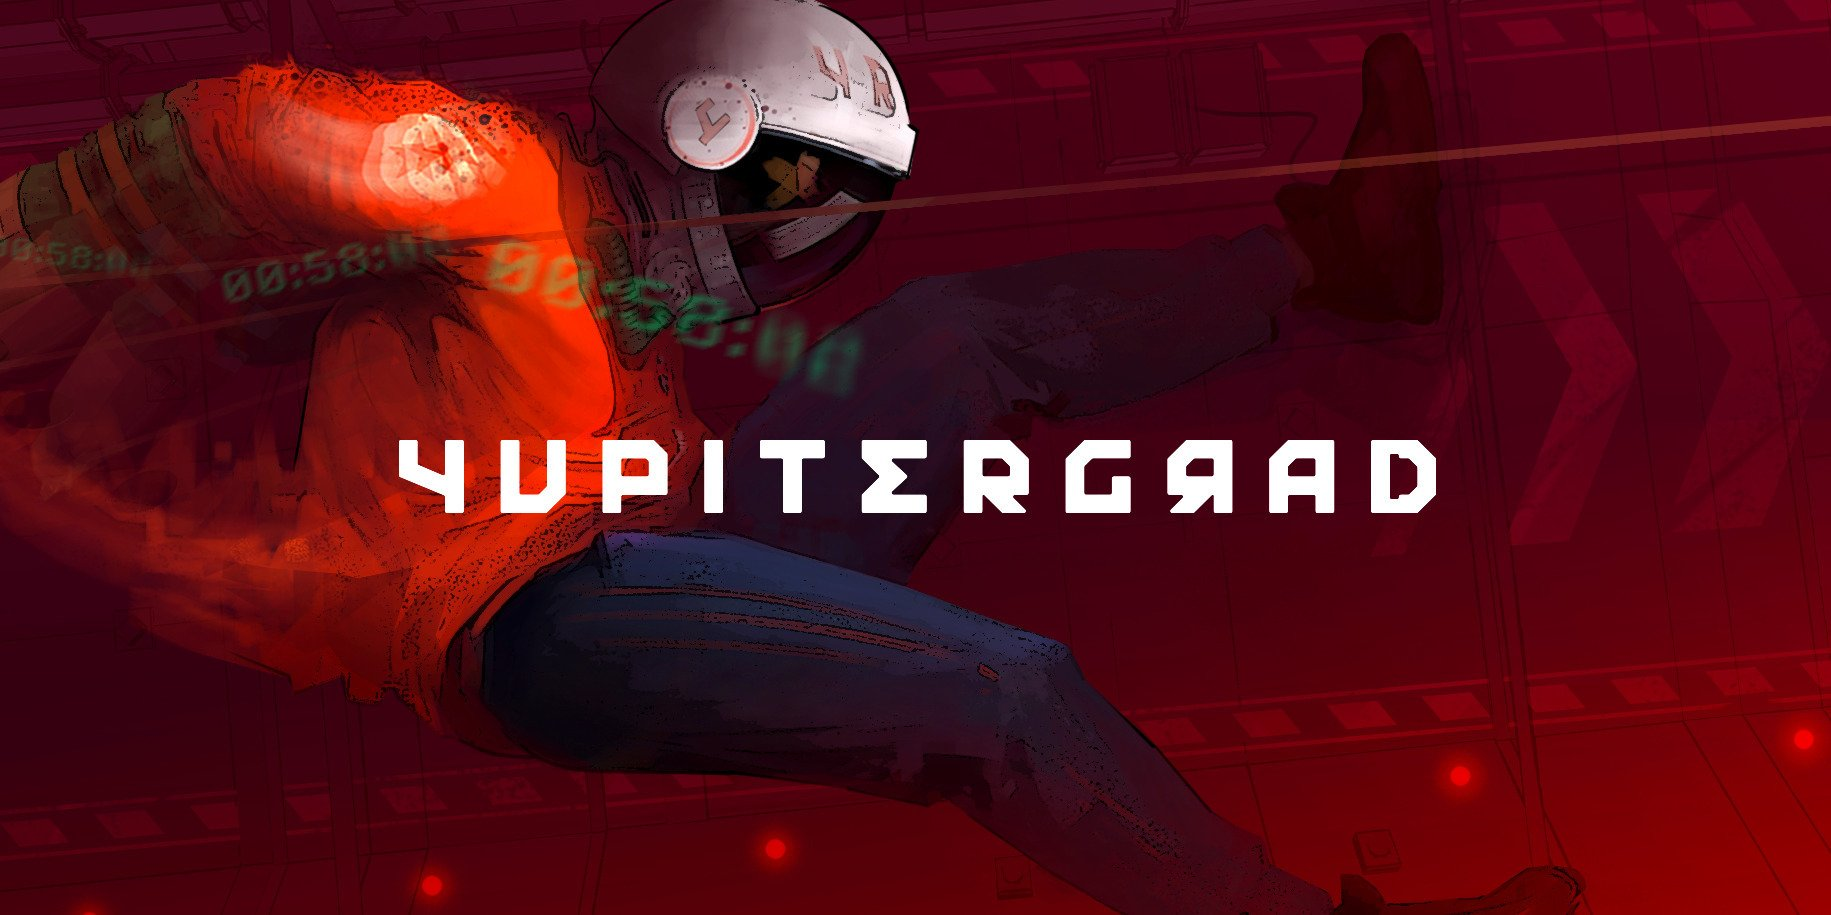 Get your PS Move Controllers ready! Yupitergrad is landing on PSVR on February 25th!